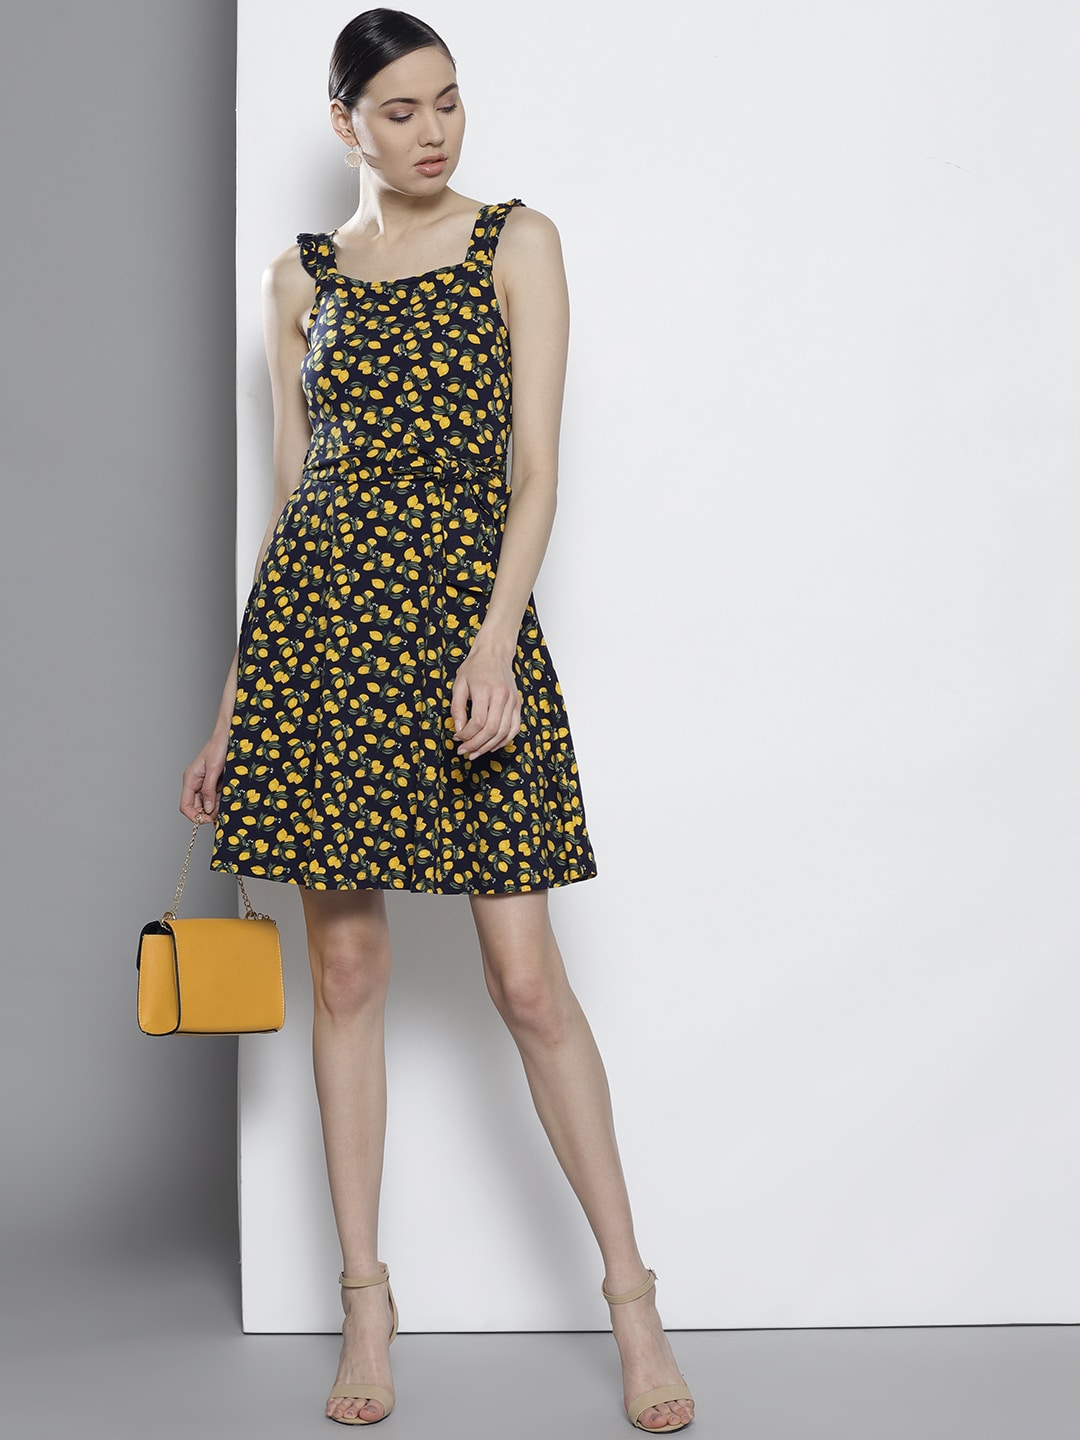 c003a3ab8b37 Dress Women Clutches - Buy Dress Women Clutches online in India